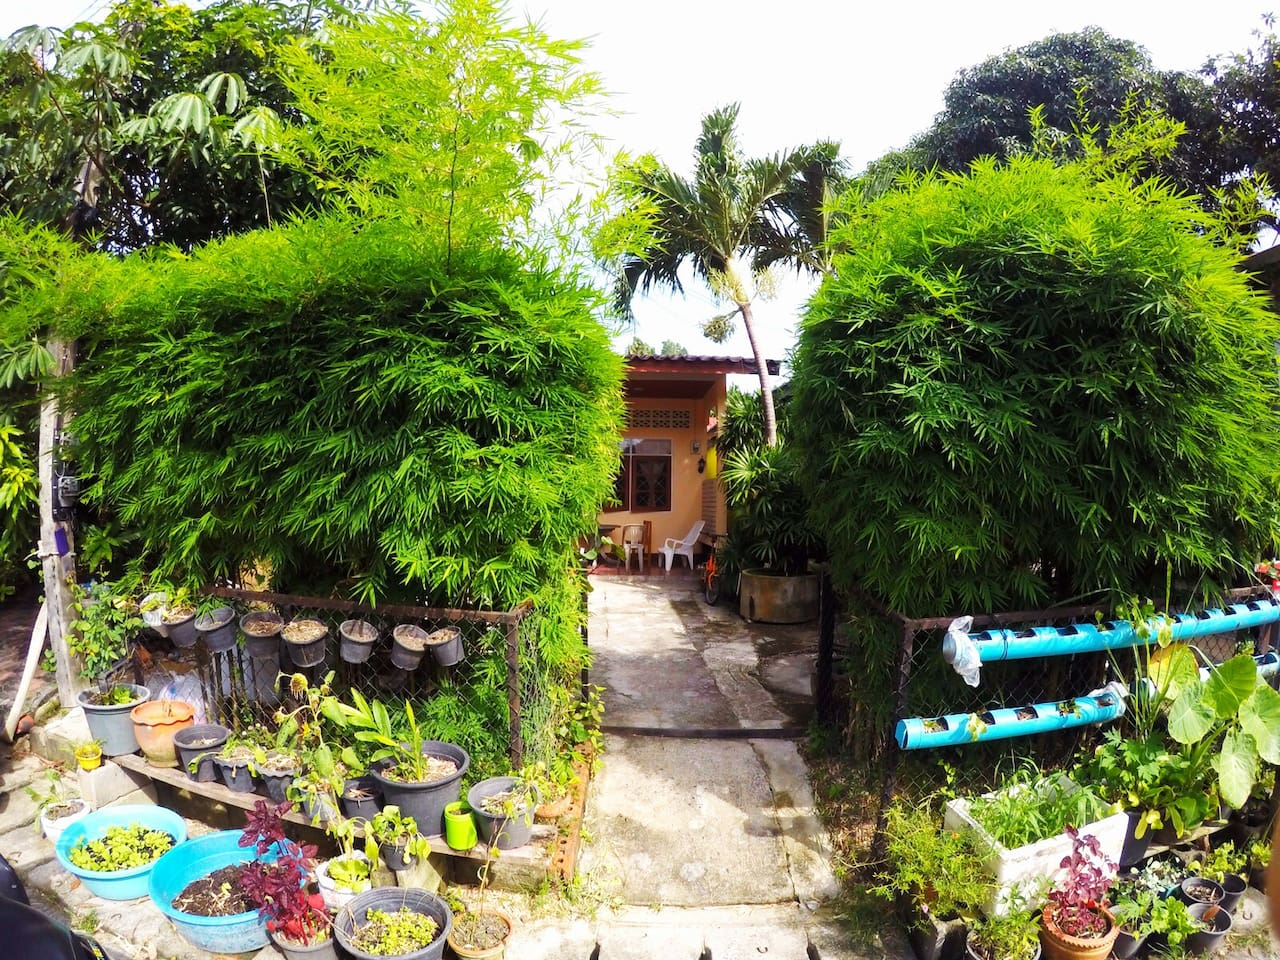 Bamboo lotus garden for quiet evenings on the terrace